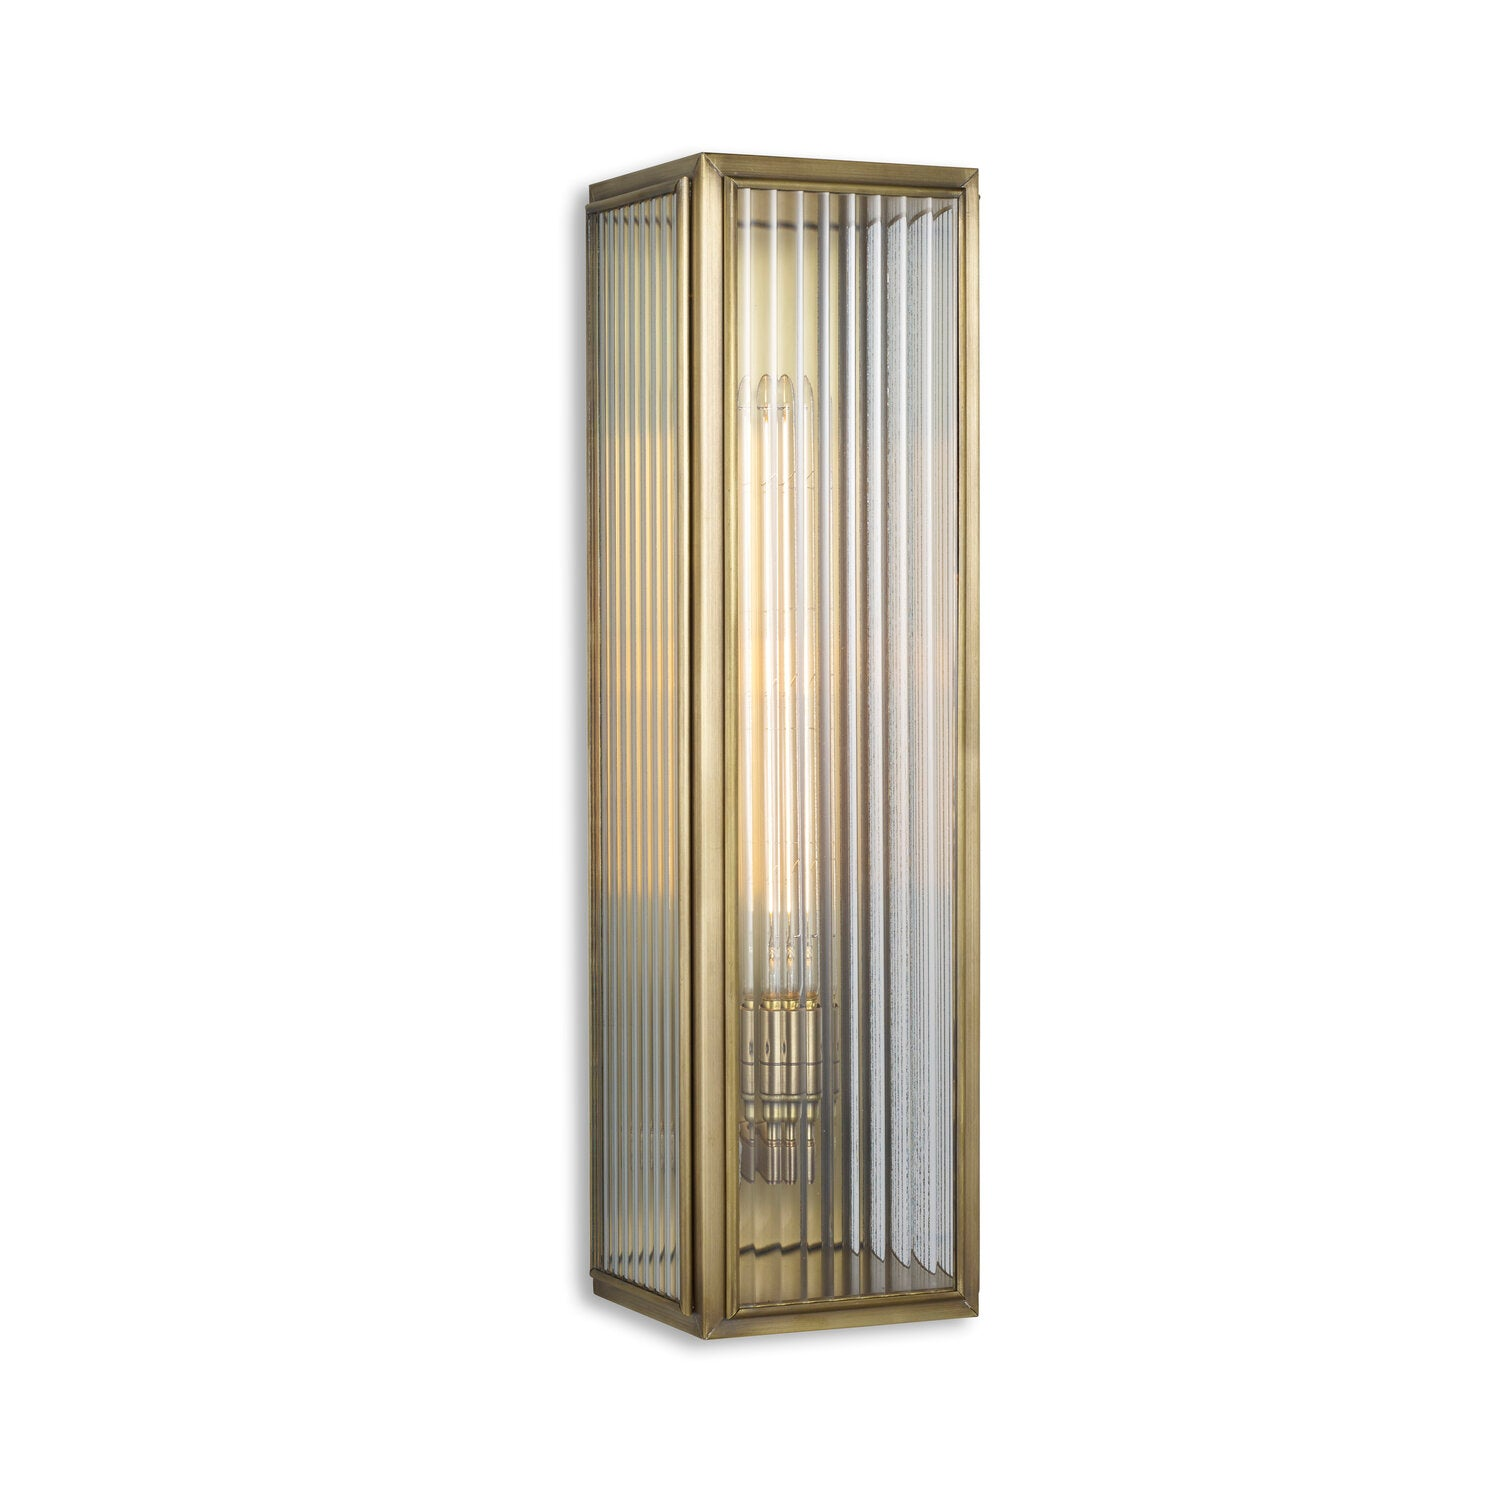 Rutland London Lloyd Wall Lantern Light (Large)